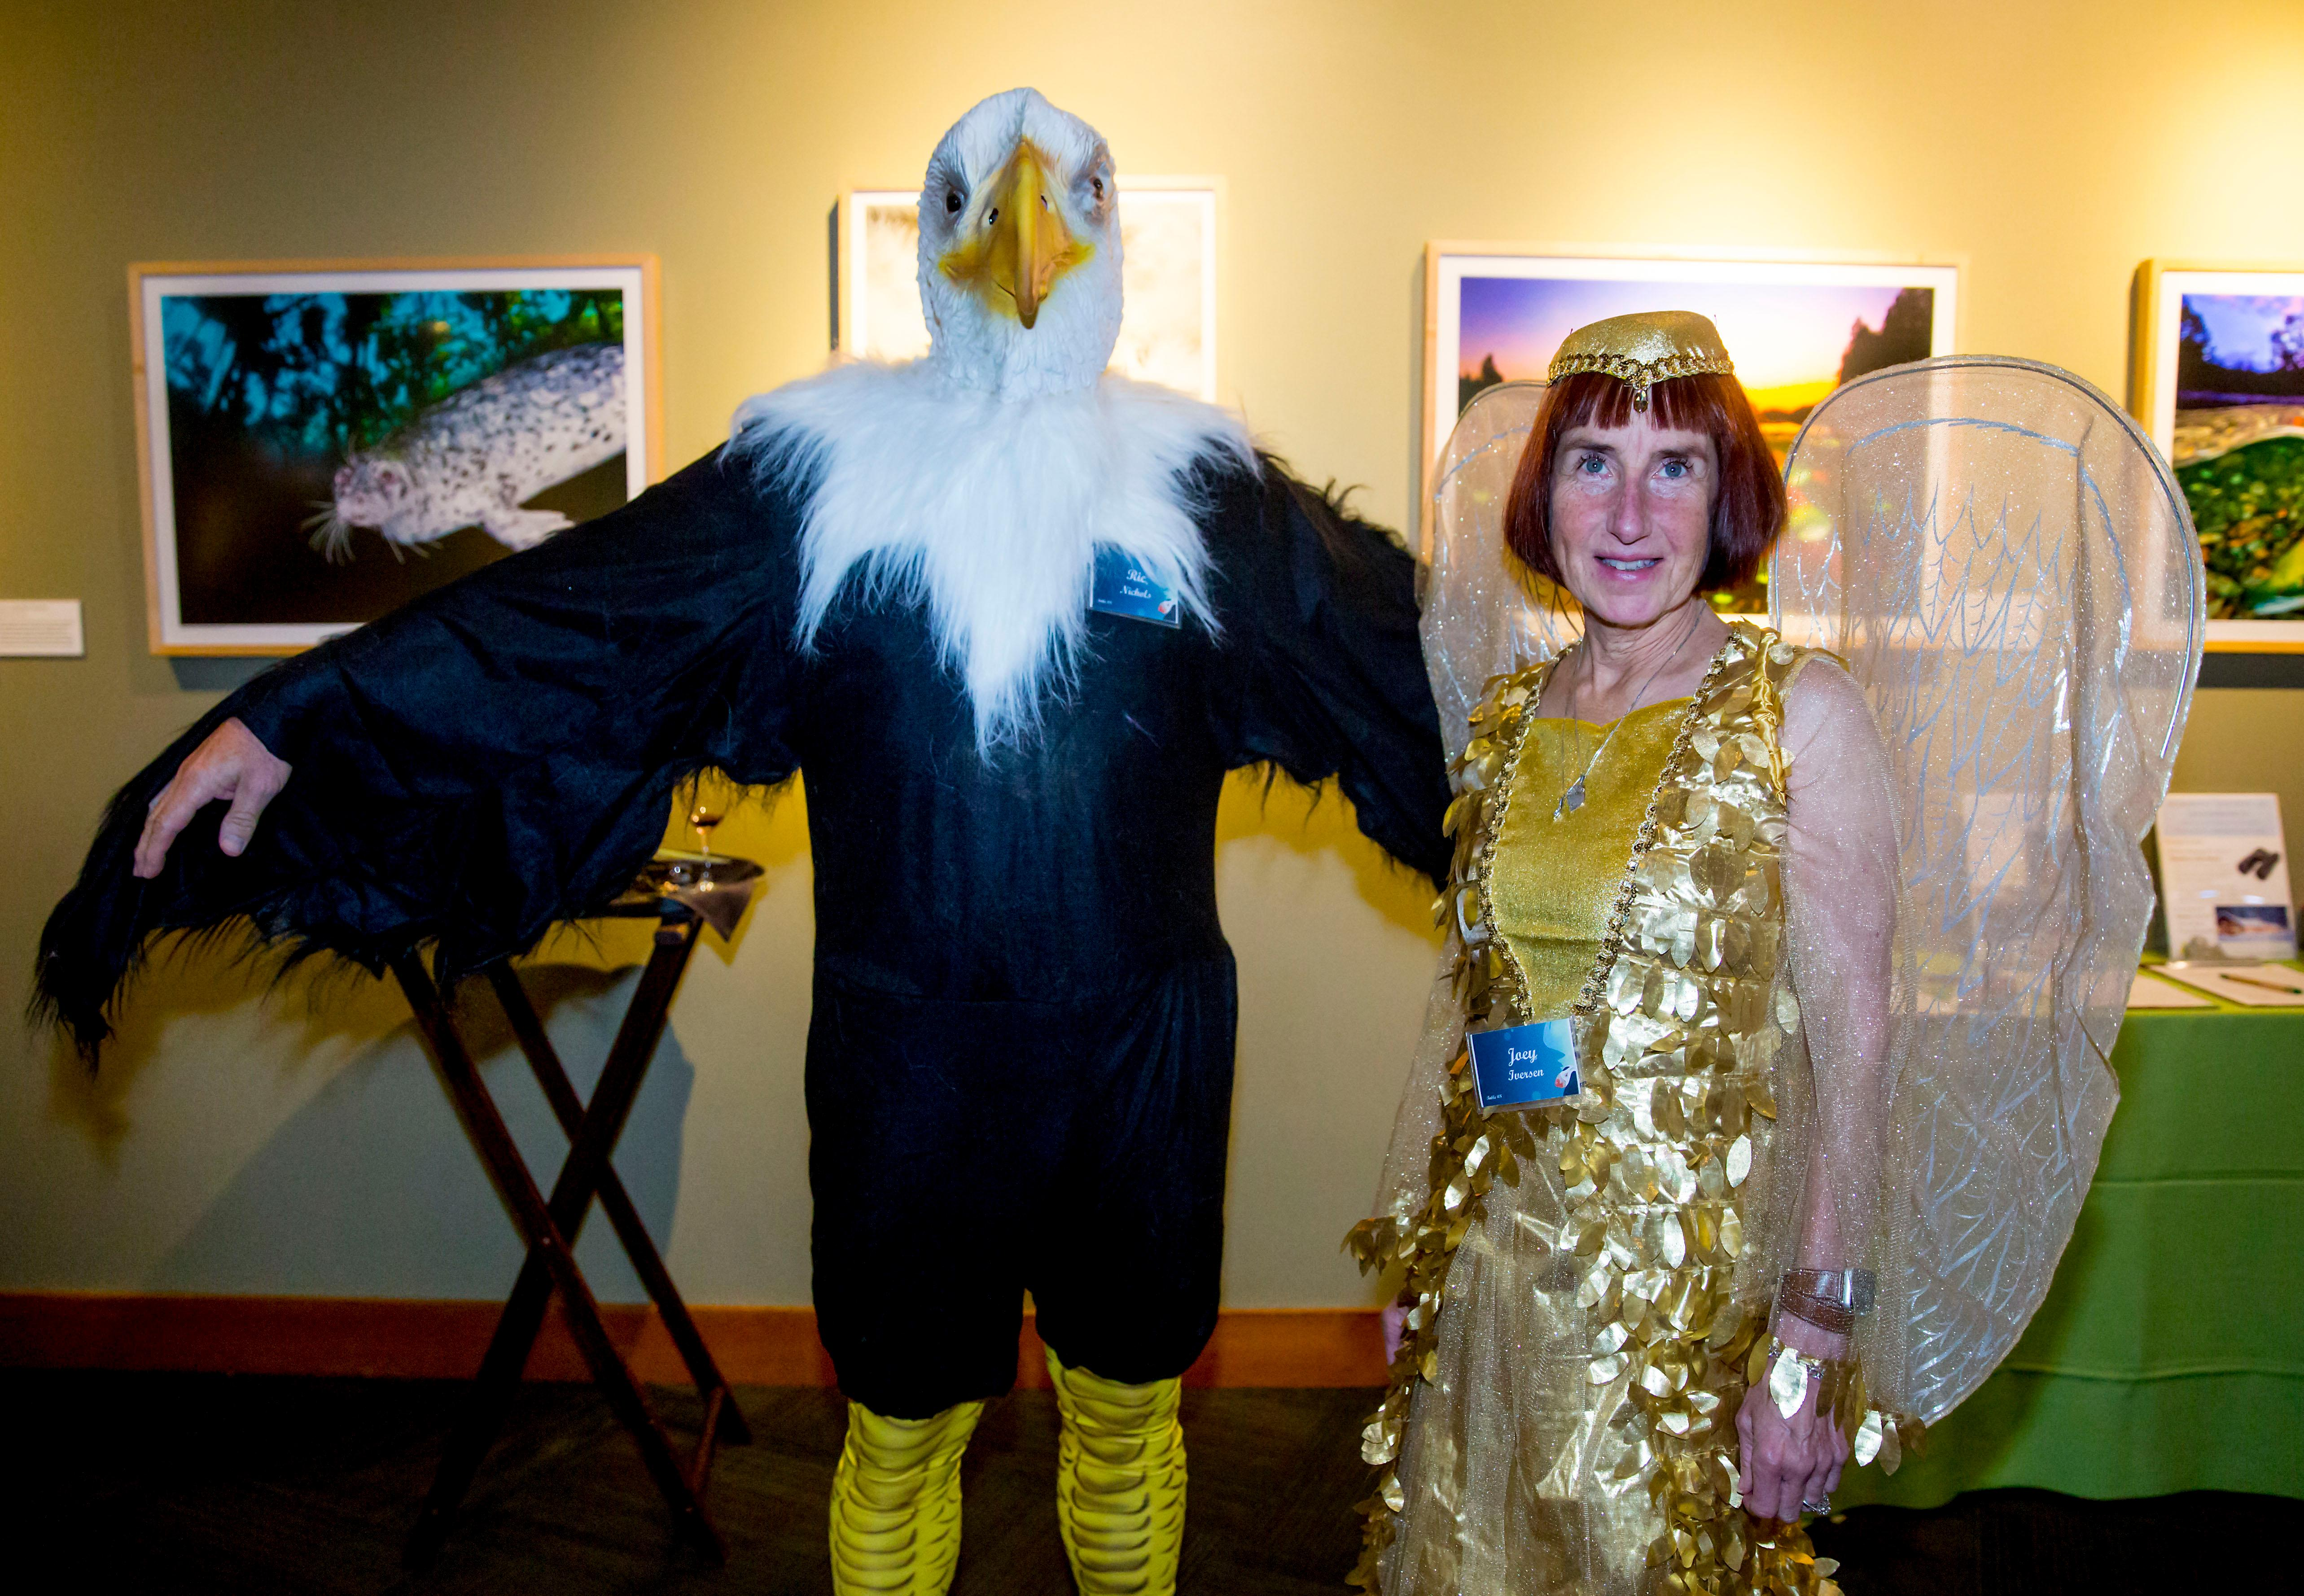 The Bird Ball is an annual event thrown by Seattle Audubon as a fundraiser to benefit birds and nature. This year's event was held Saturday October 21 at the Seattle Aquarium, and besides the wonderful masquerade costumes – was filled with live music, food, drink and a great time altogether.